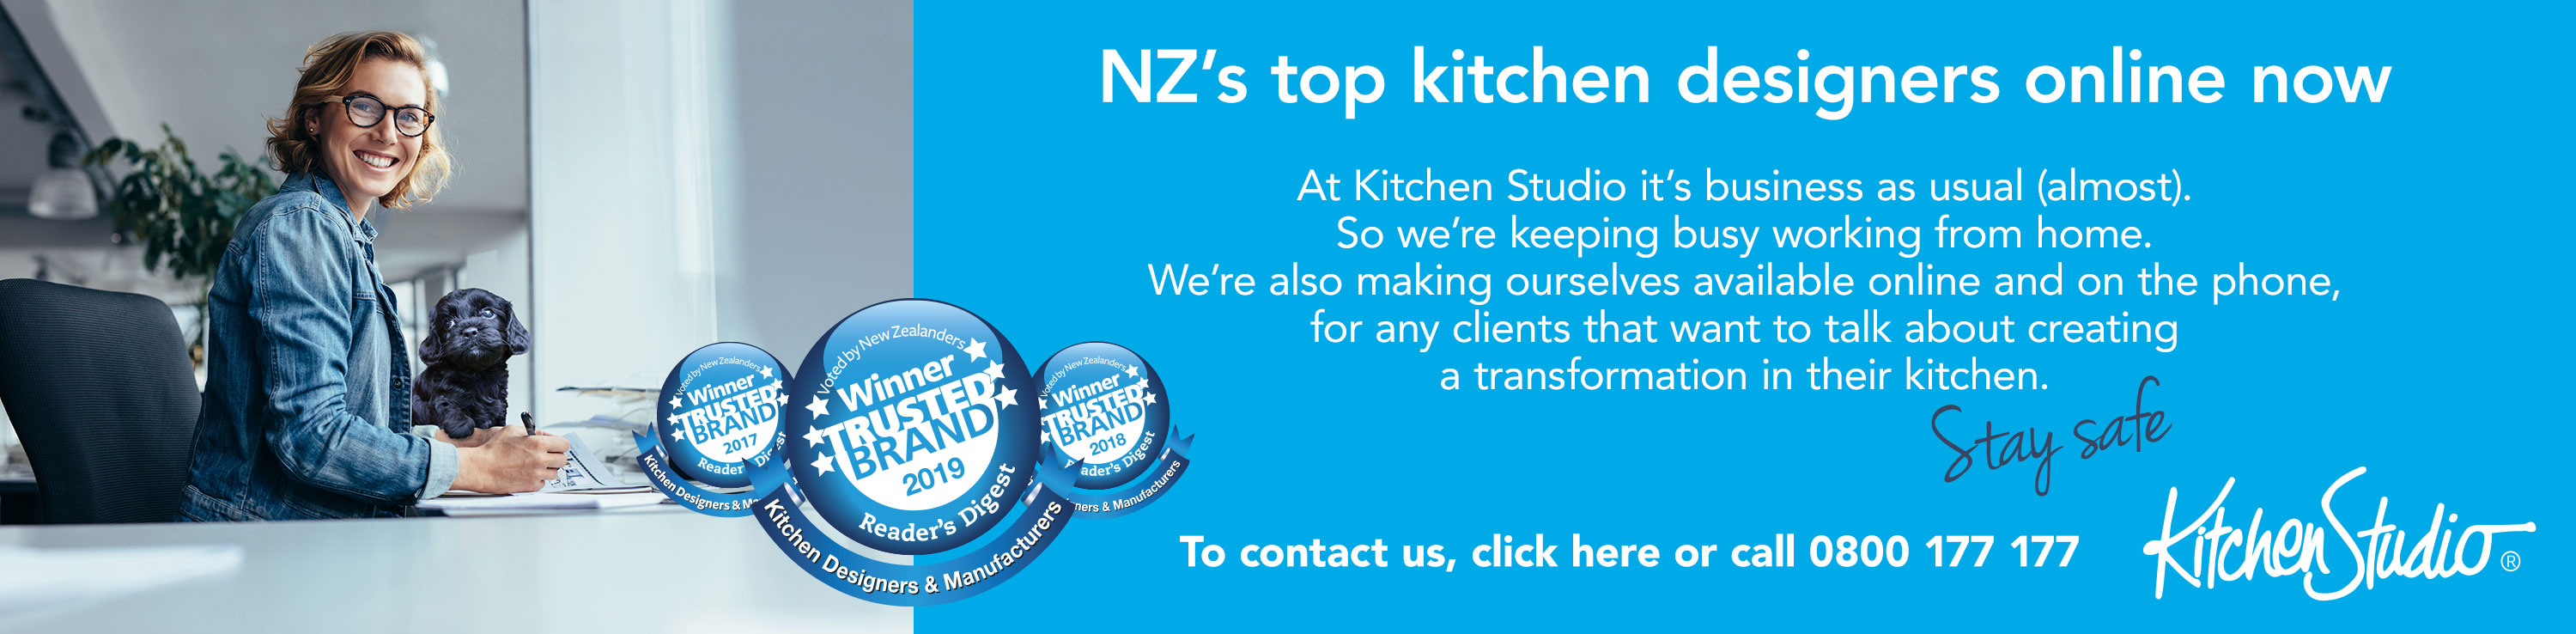 NZ's top kitchen designers online now